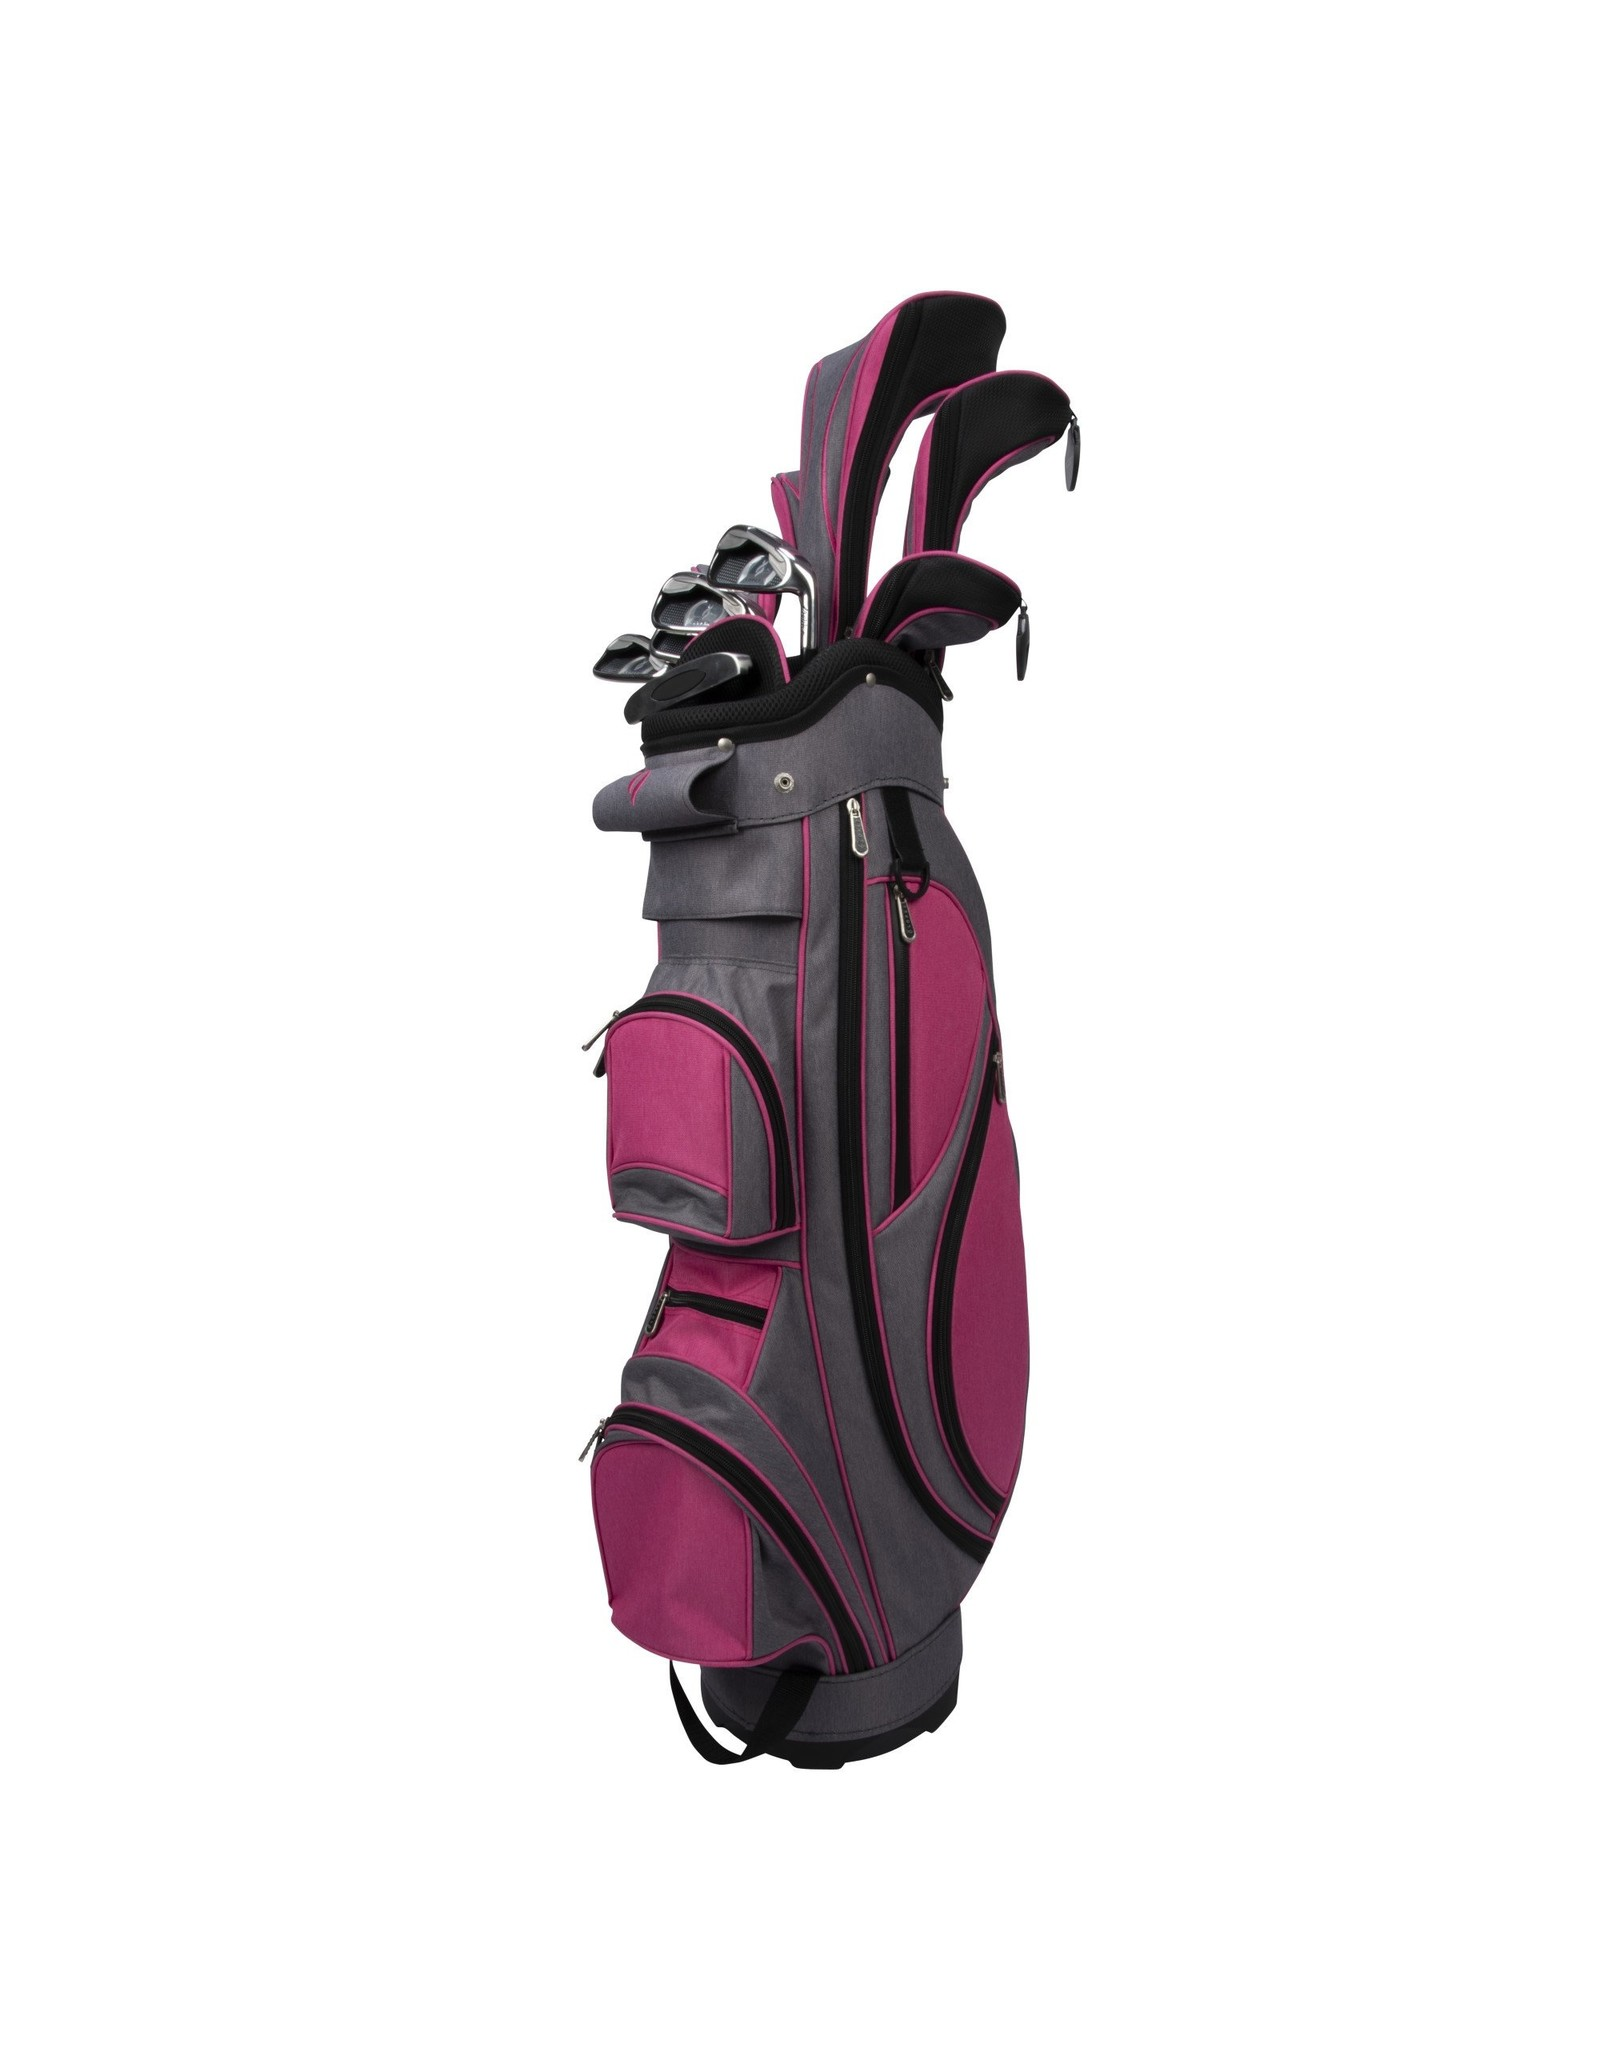 Lopez Golf Lopez Ashley 2020 Package Set